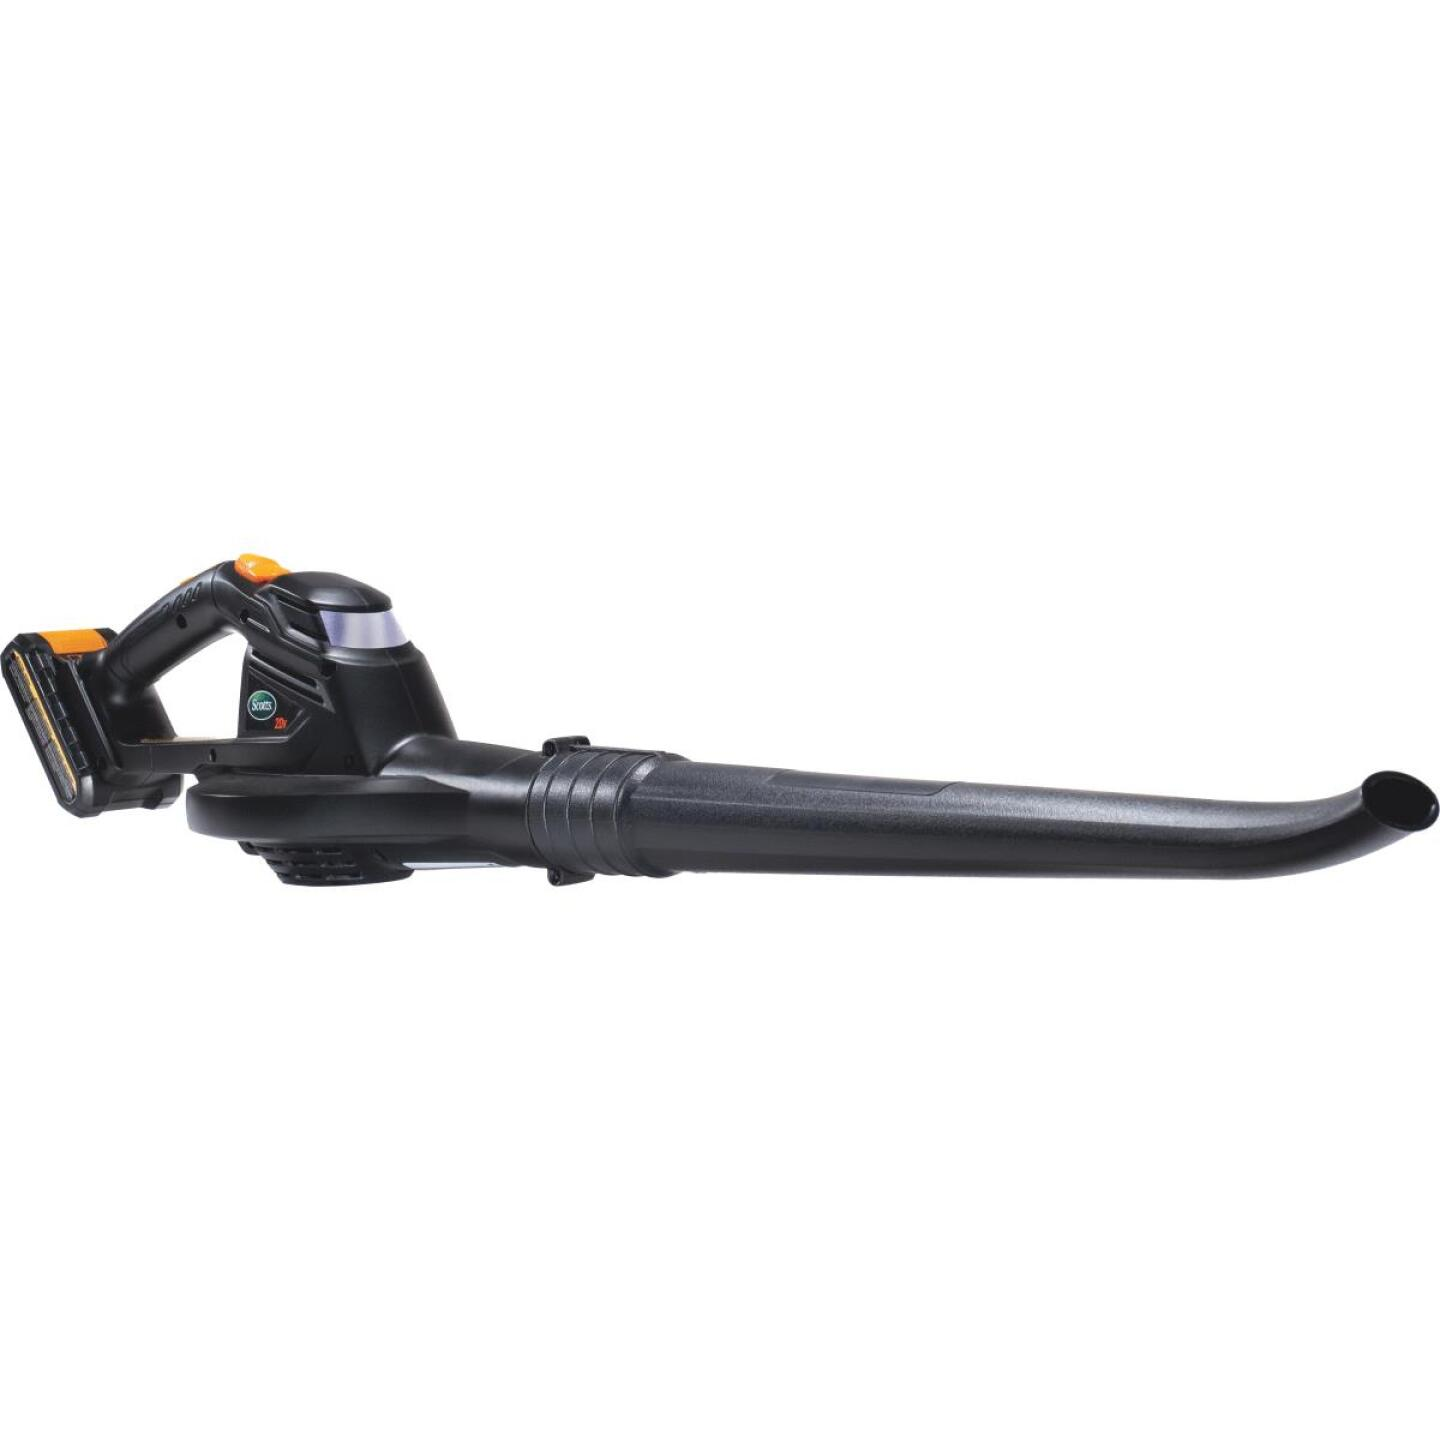 Scotts 130 MPH 20V Lithium-Ion Cordless Blower Image 1